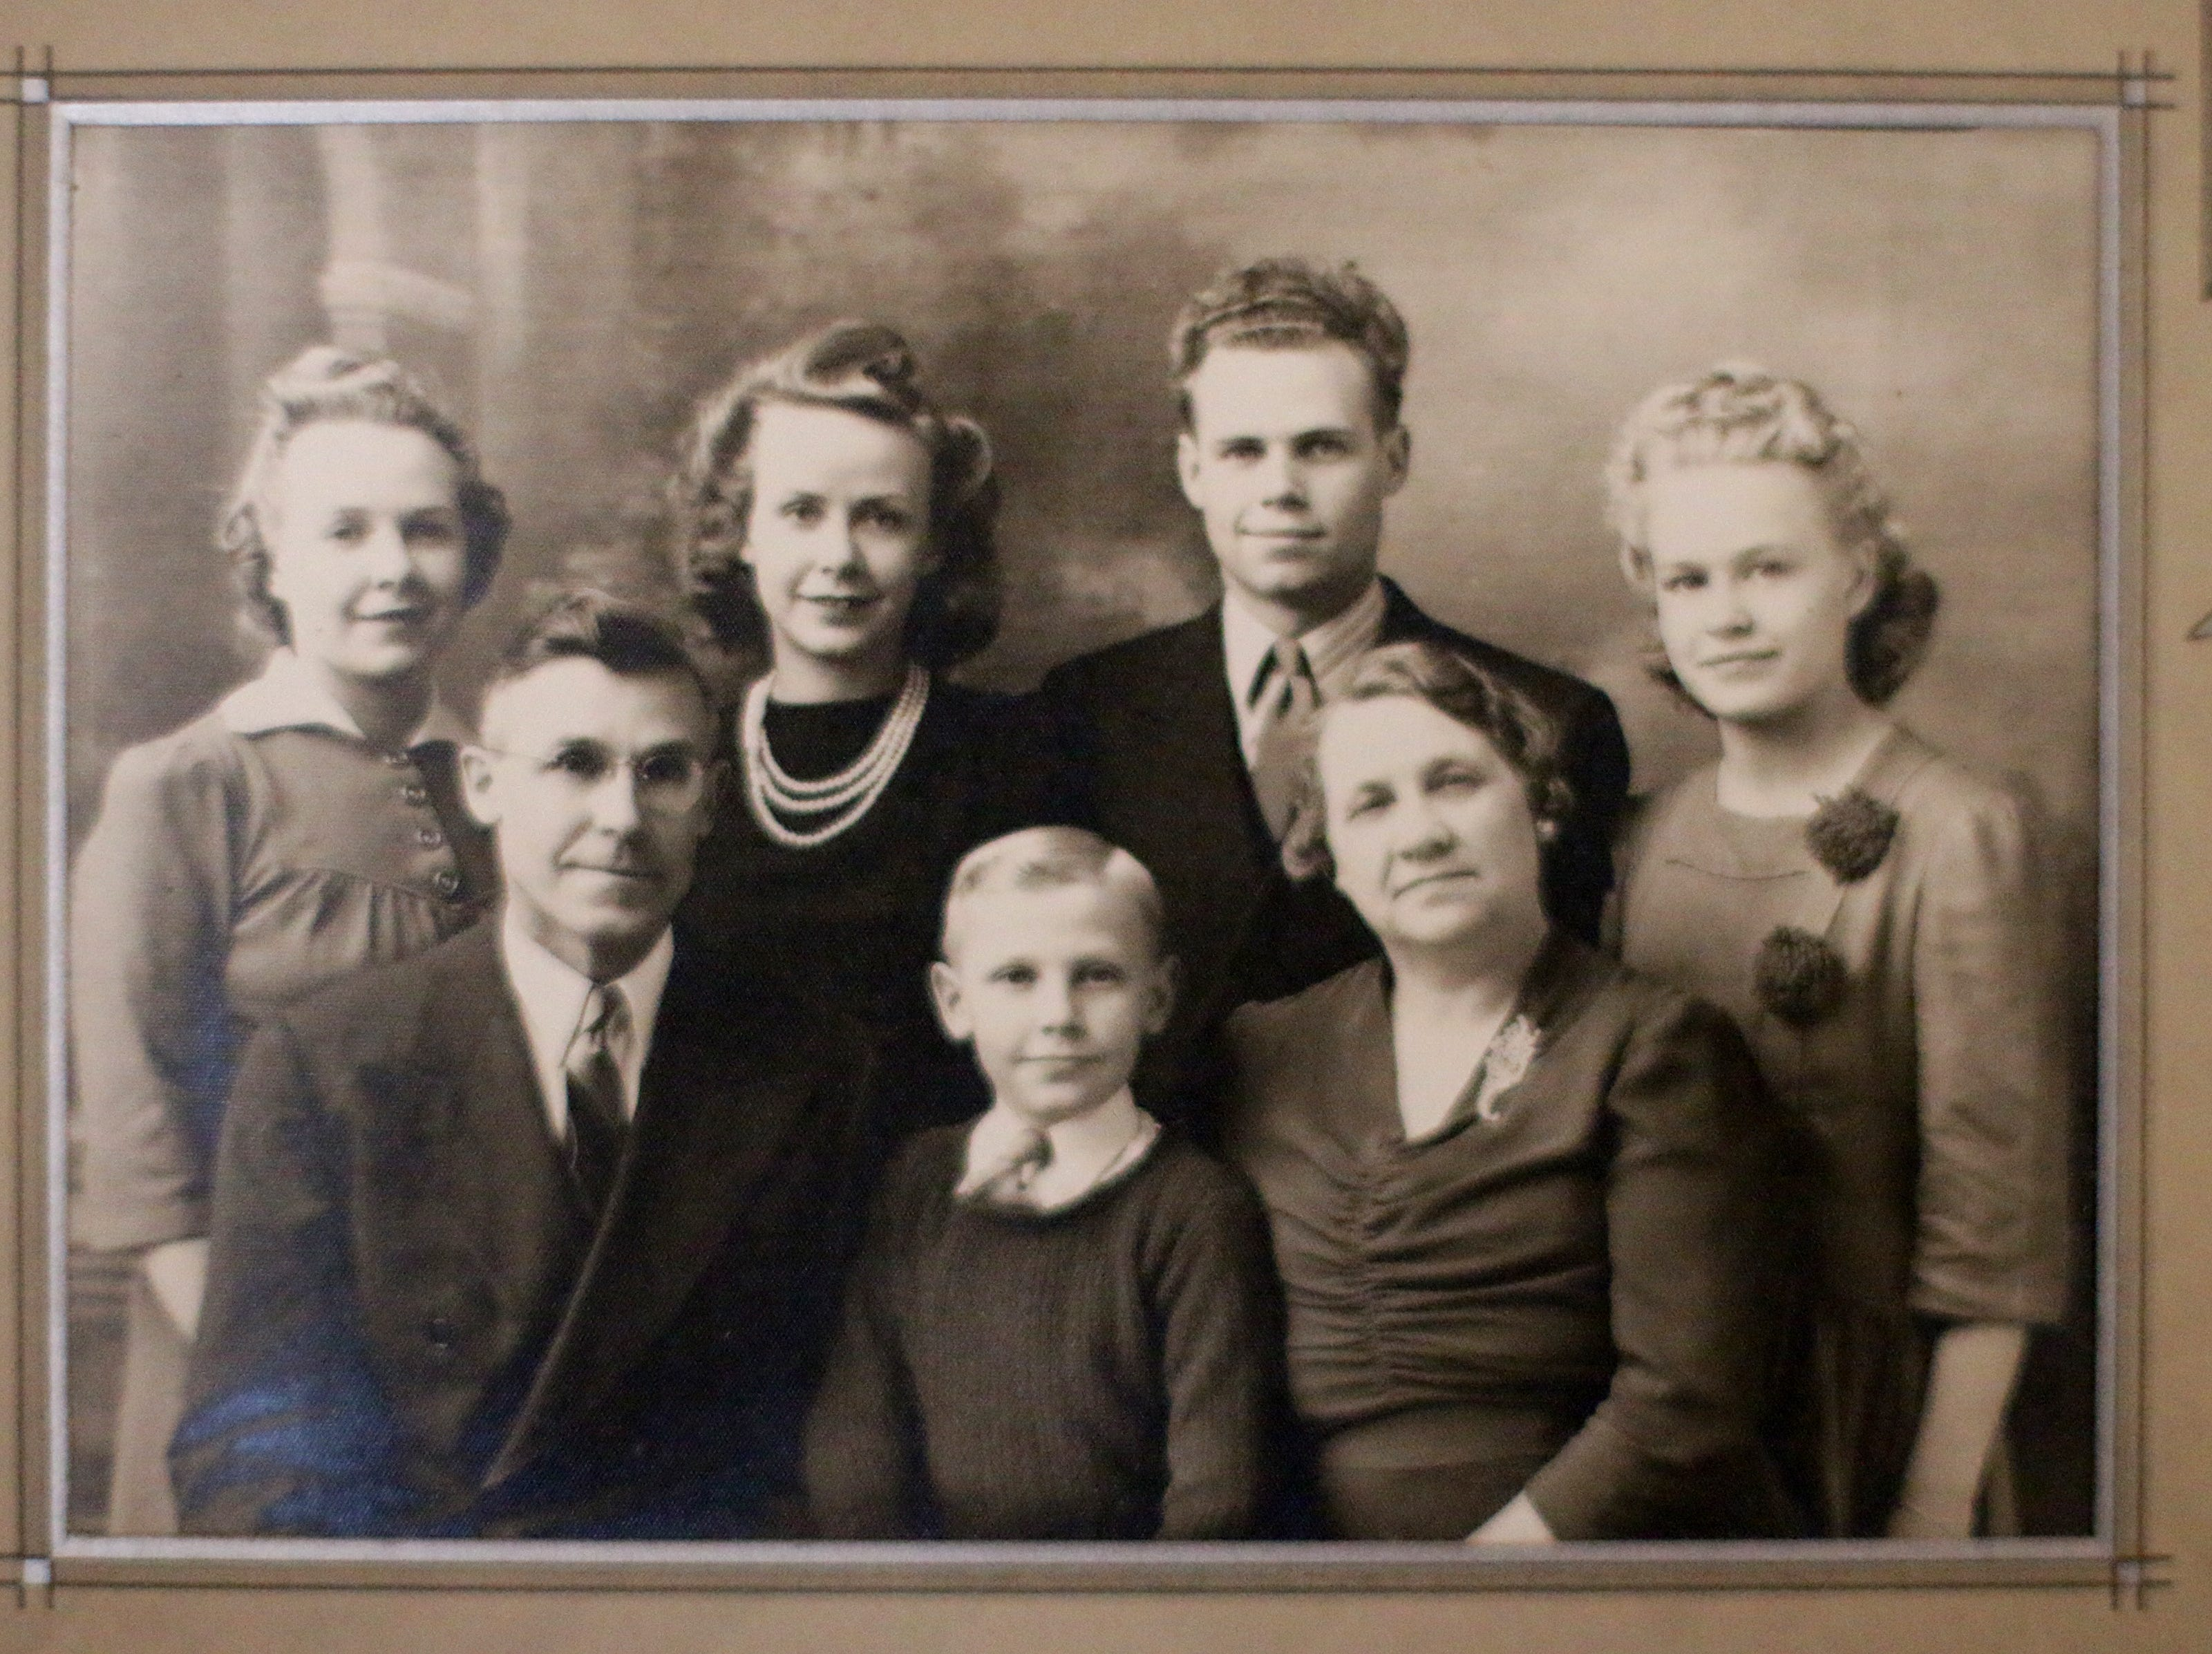 World War II veteran Don Harder, back row third from left, appears in pre-war family photo on display,  Friday January 18, 2019, 2019, at Pine Haven Christian Communities in Oostburg, Wis.